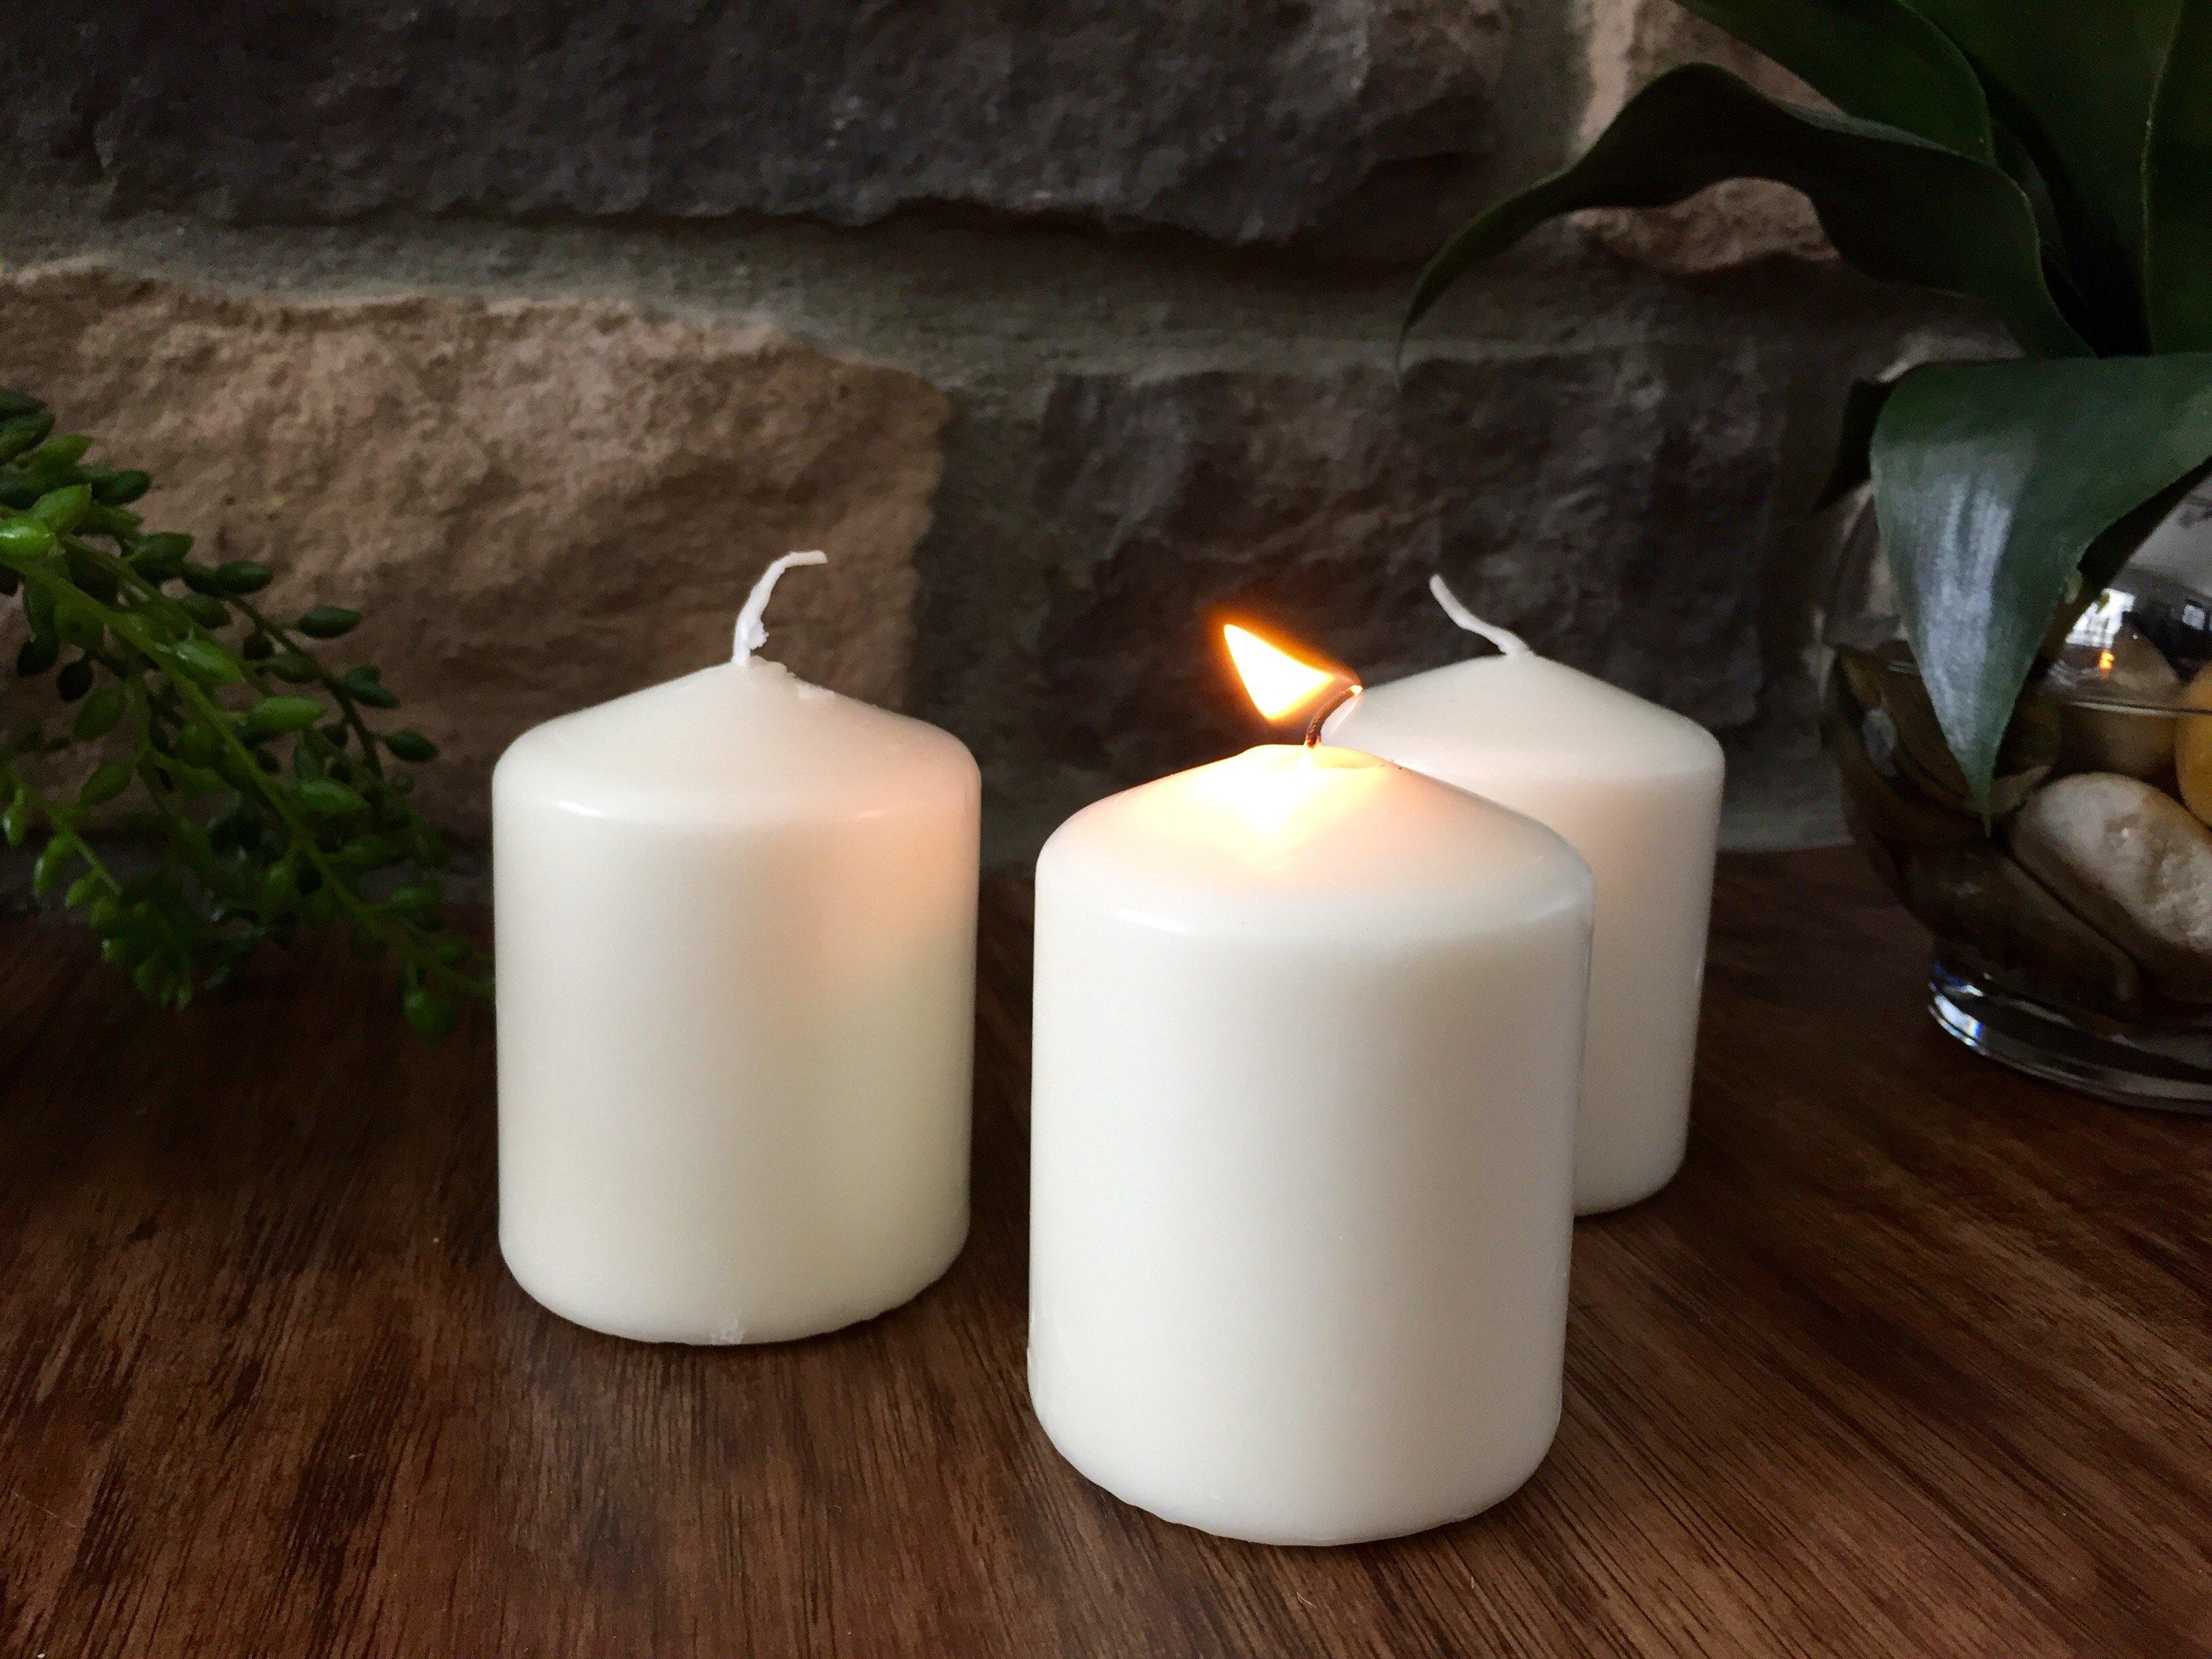 How many lantern candles would you like to include?